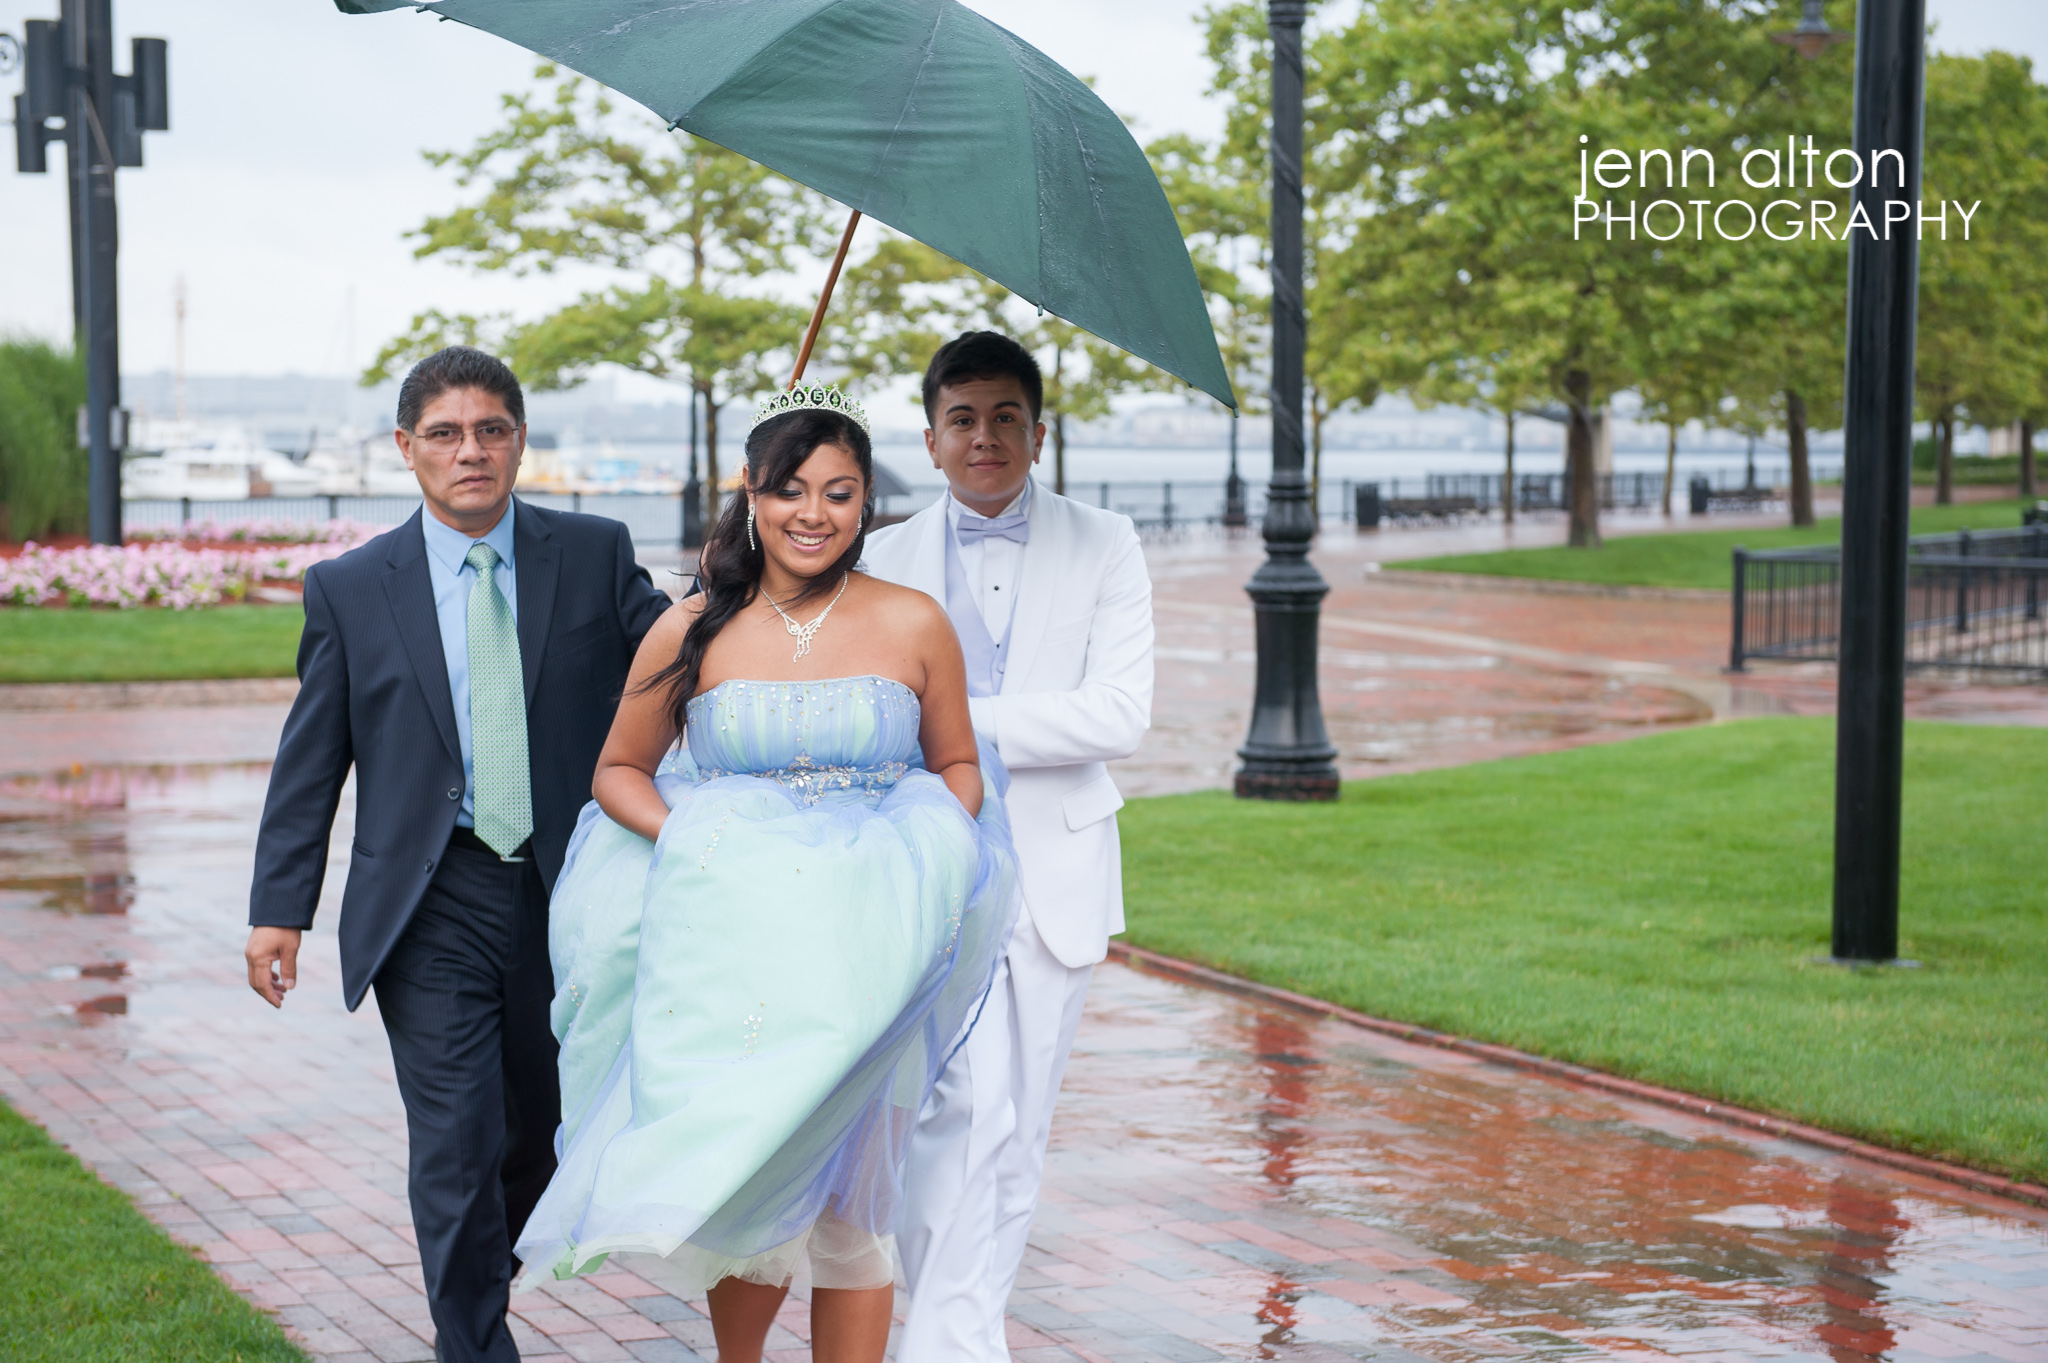 Quinceanera, father and Chambelan under umbrella at park, East Boston